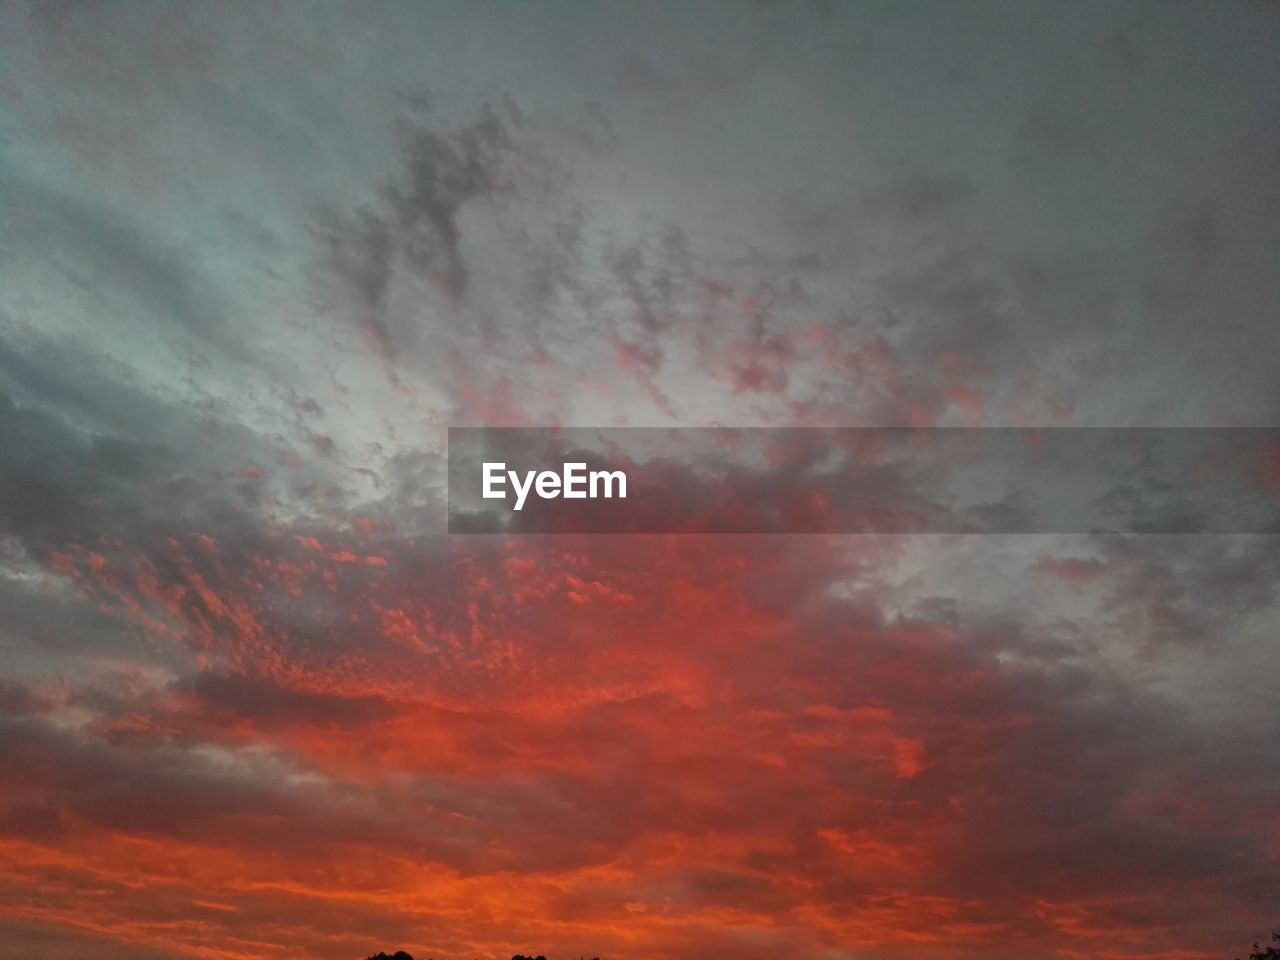 sky, cloud - sky, beauty in nature, sunset, scenics - nature, tranquil scene, tranquility, no people, low angle view, nature, orange color, dramatic sky, cloudscape, red, backgrounds, idyllic, outdoors, full frame, awe, meteorology, ominous